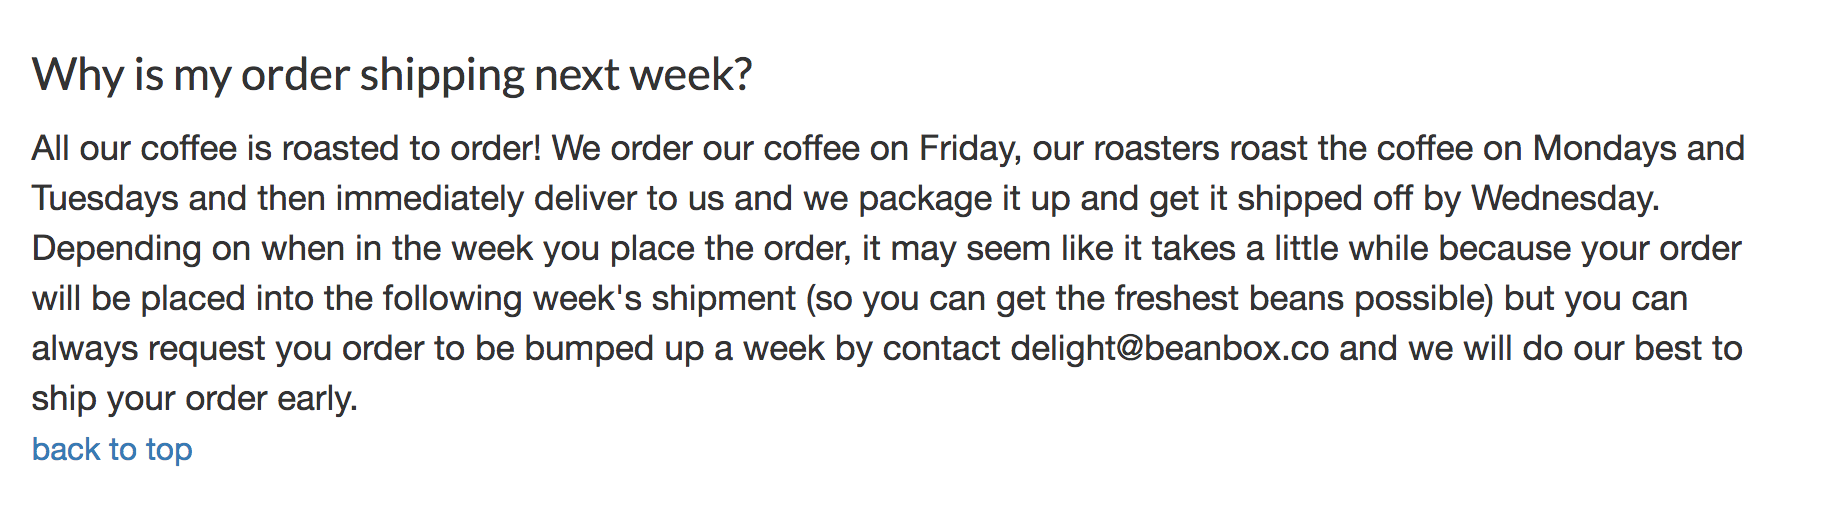 Bean Box shipping policy example #2